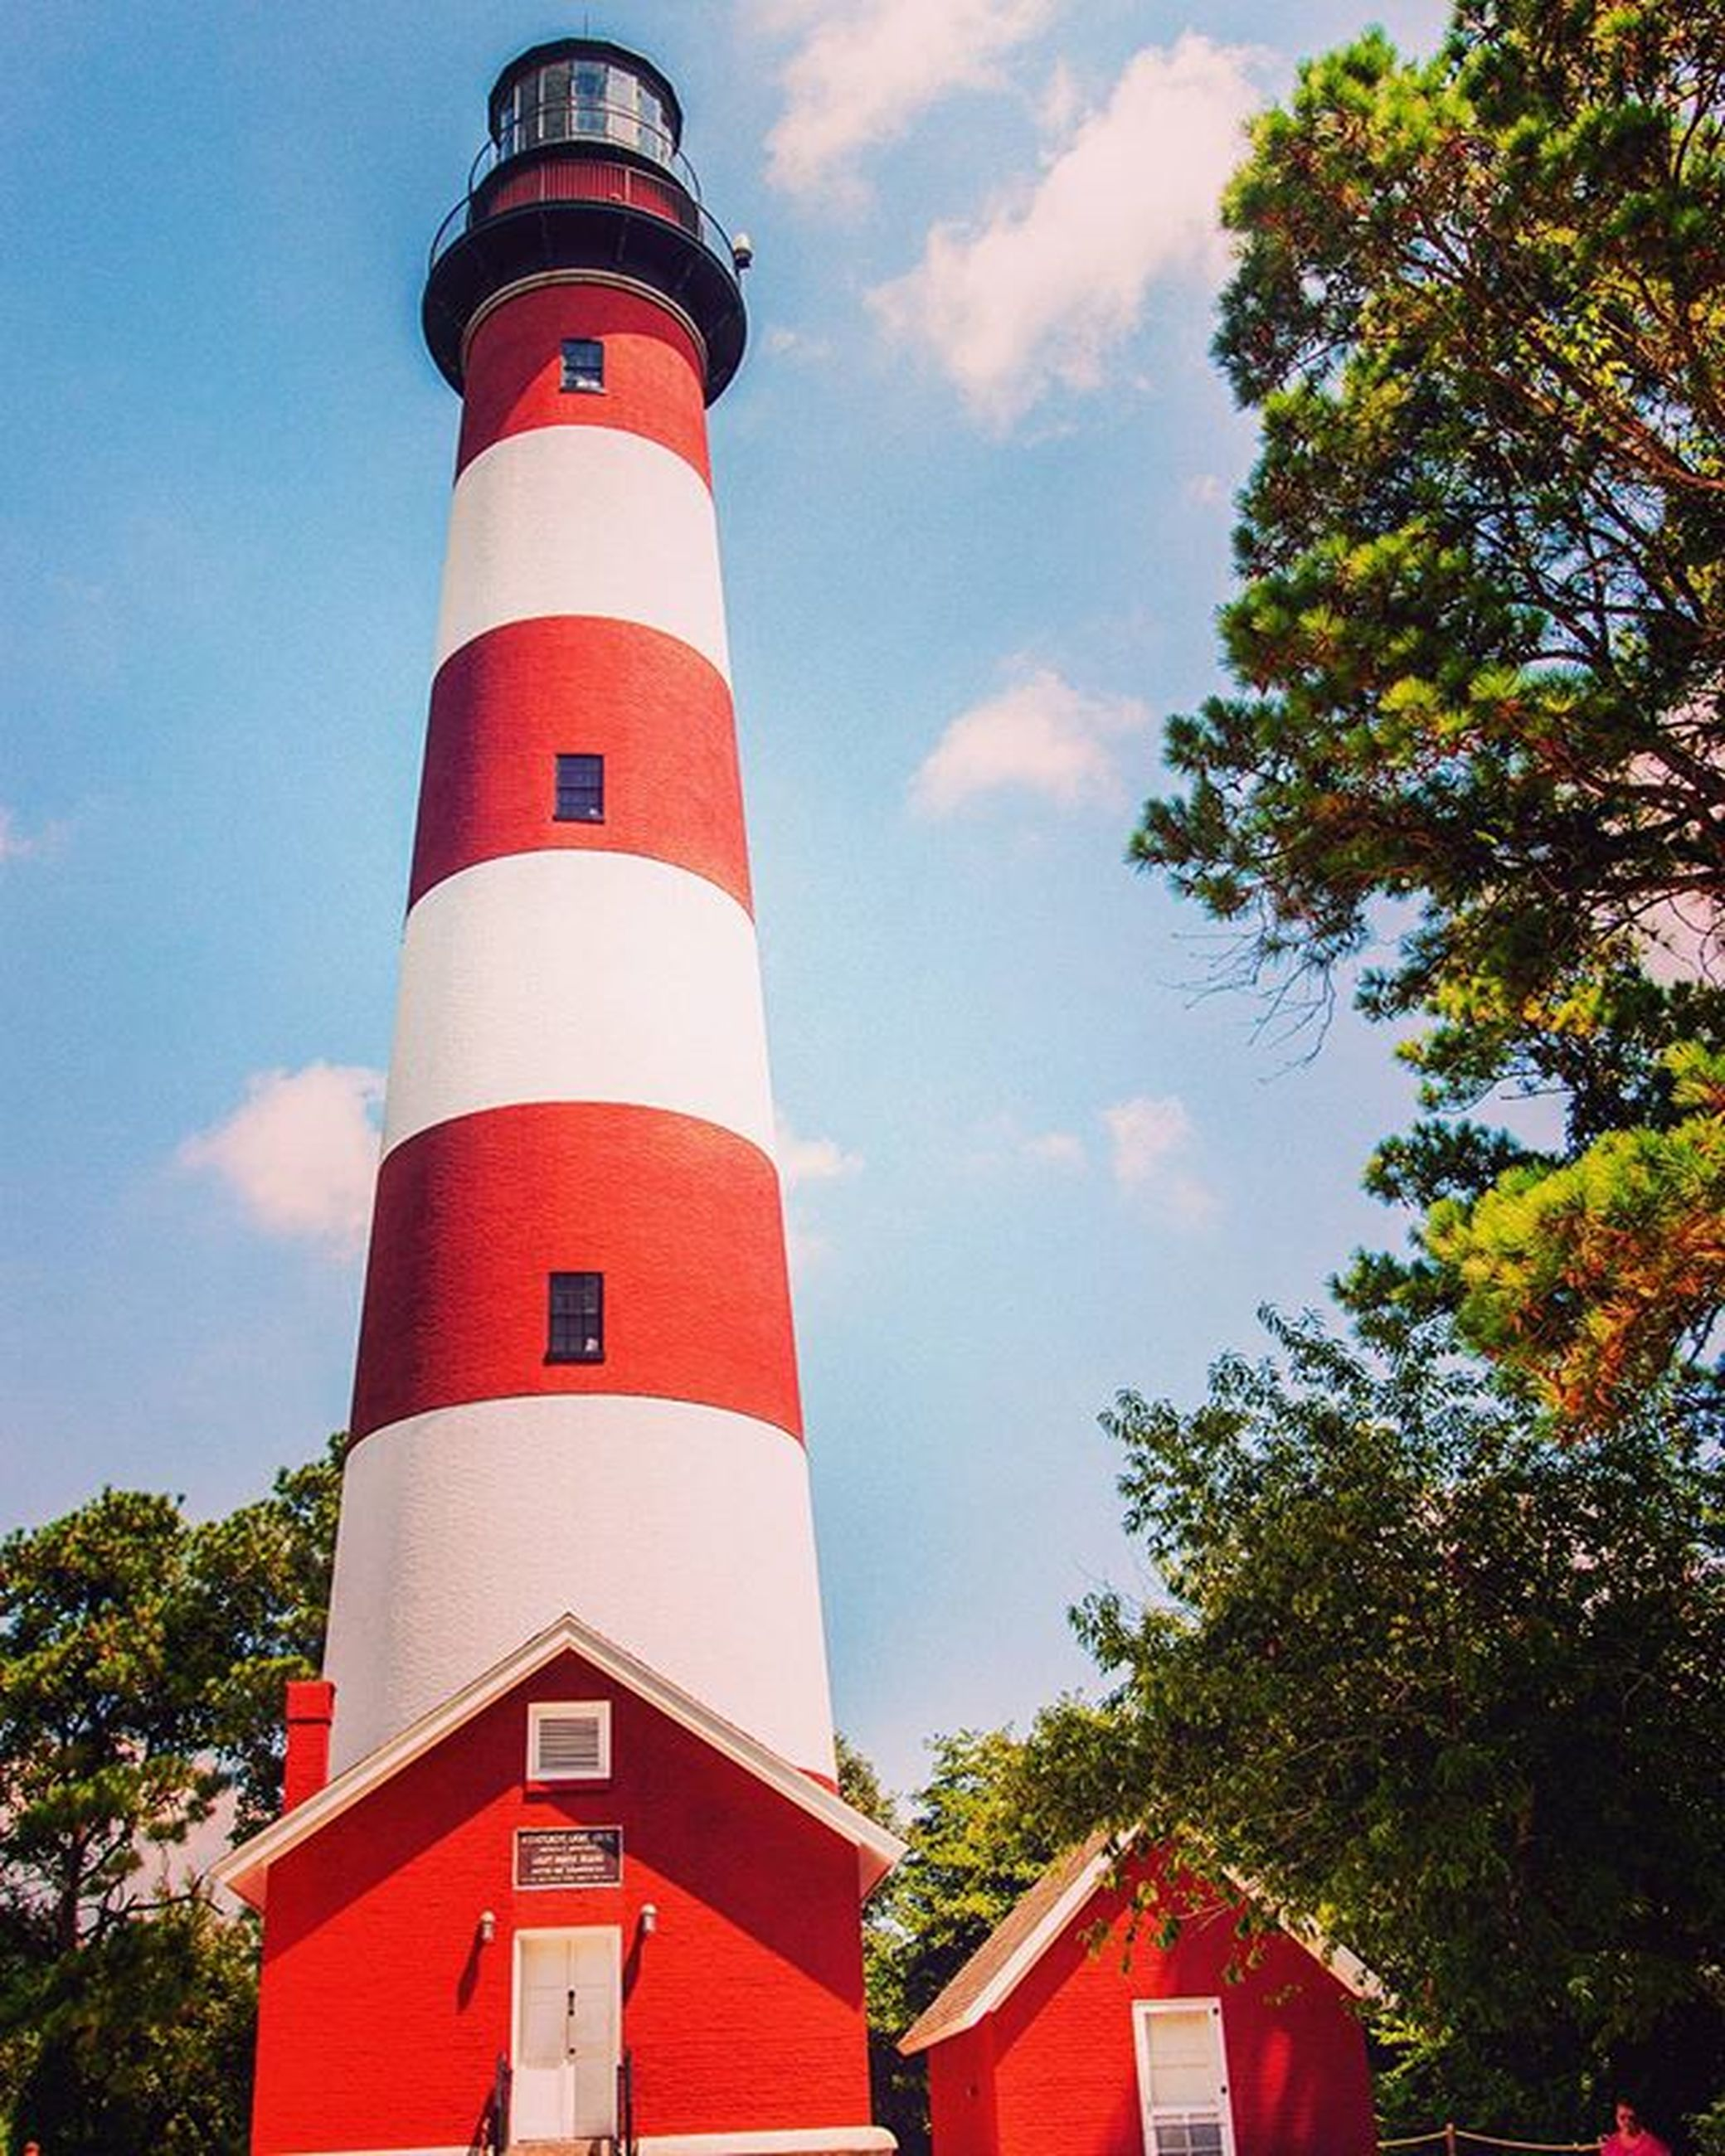 architecture, red, building exterior, built structure, lighthouse, sky, tower, protection, guidance, safety, low angle view, direction, security, tree, day, no people, outdoors, cloud - sky, cloud, blue